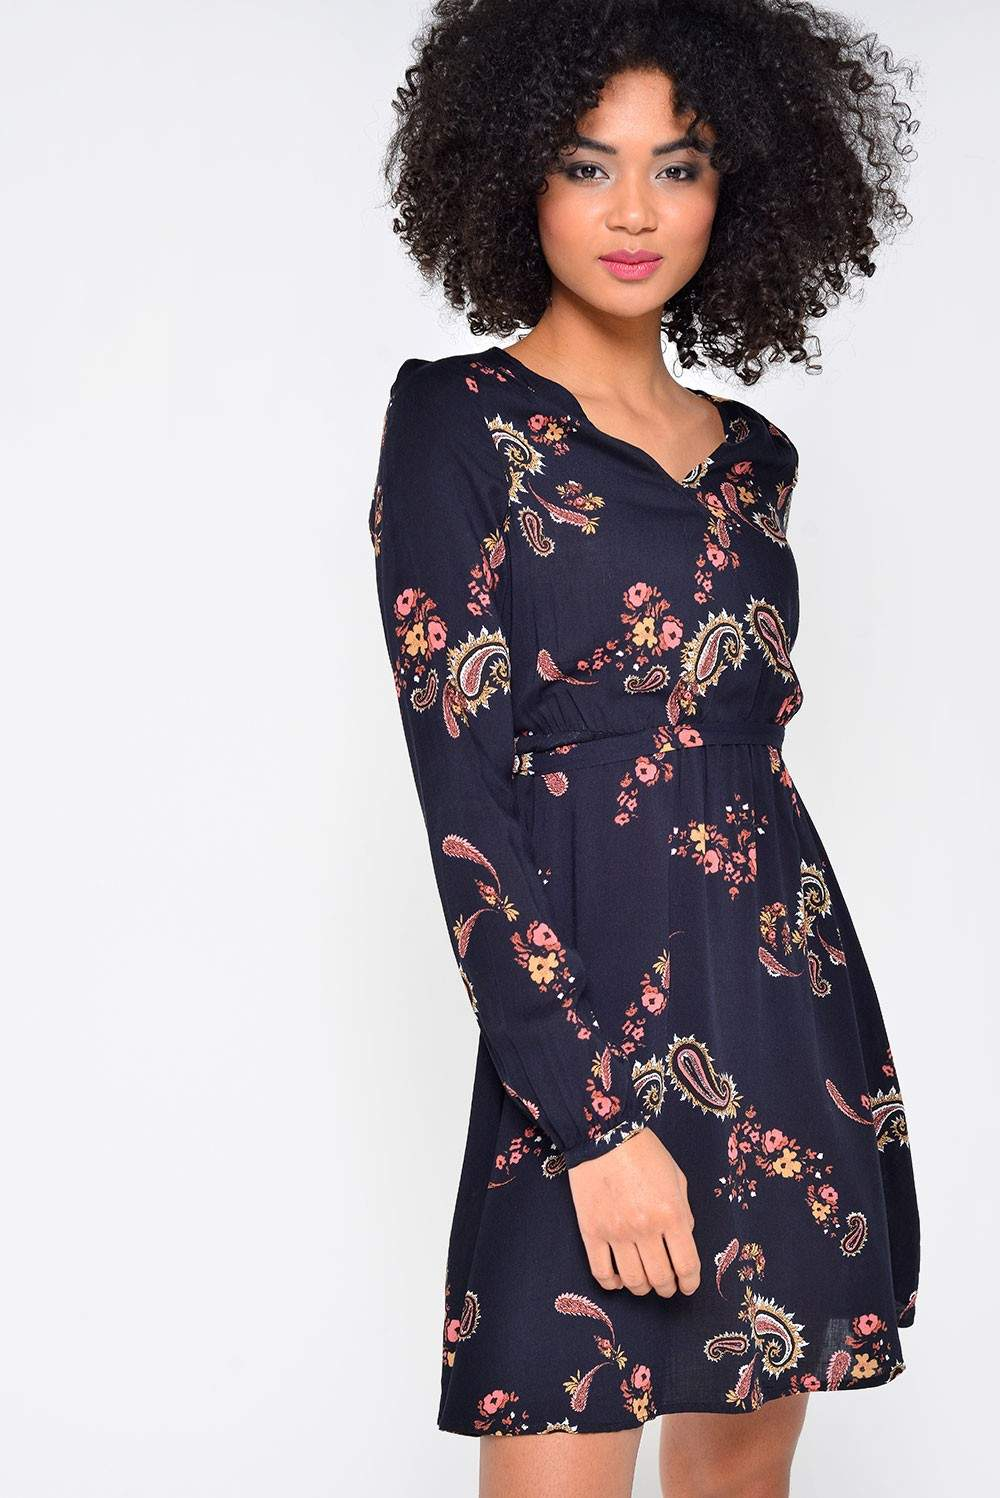 Vero moda simply easy short wrap dress in black iclothing for Simply simple